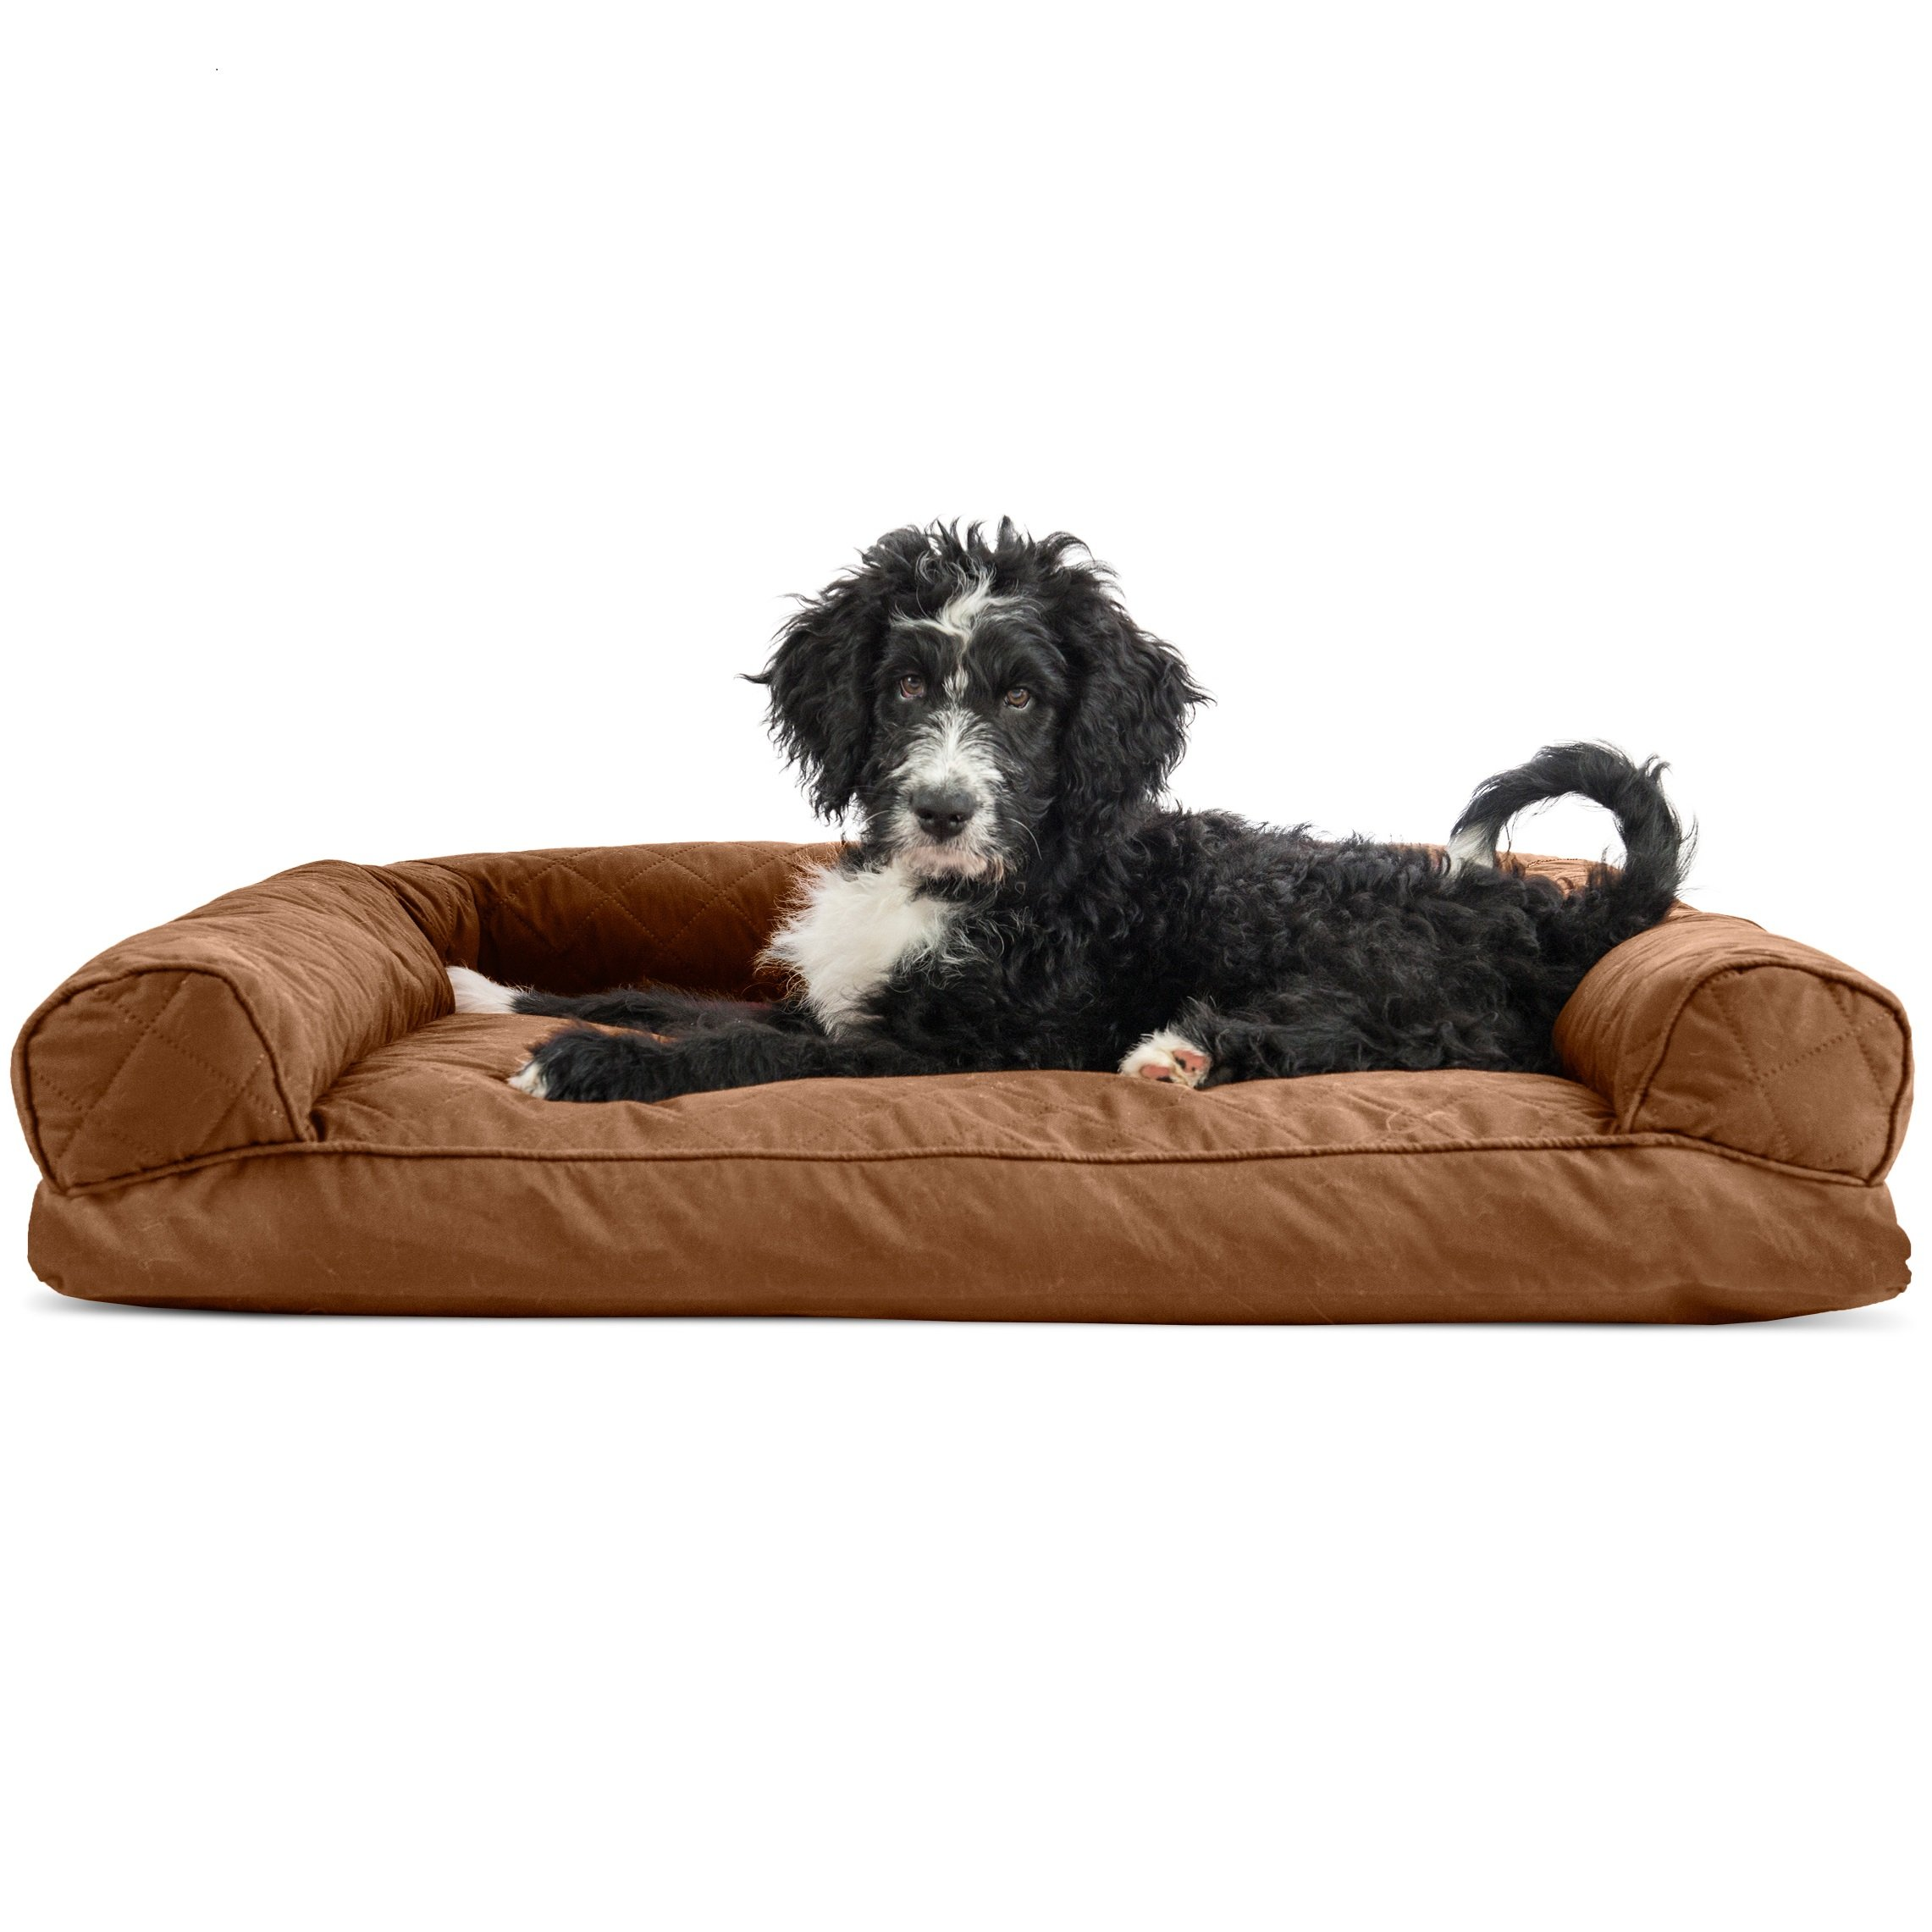 Medium 1 Piece Brown Color Quilted Pillow Sofa Style Pet Bed Dog Cat Kitten Puppy Doggy Animal Four Legged Superbly Snuggly Beautiful Soft Cozy Luxurious Comfortable Easy Feel Relax